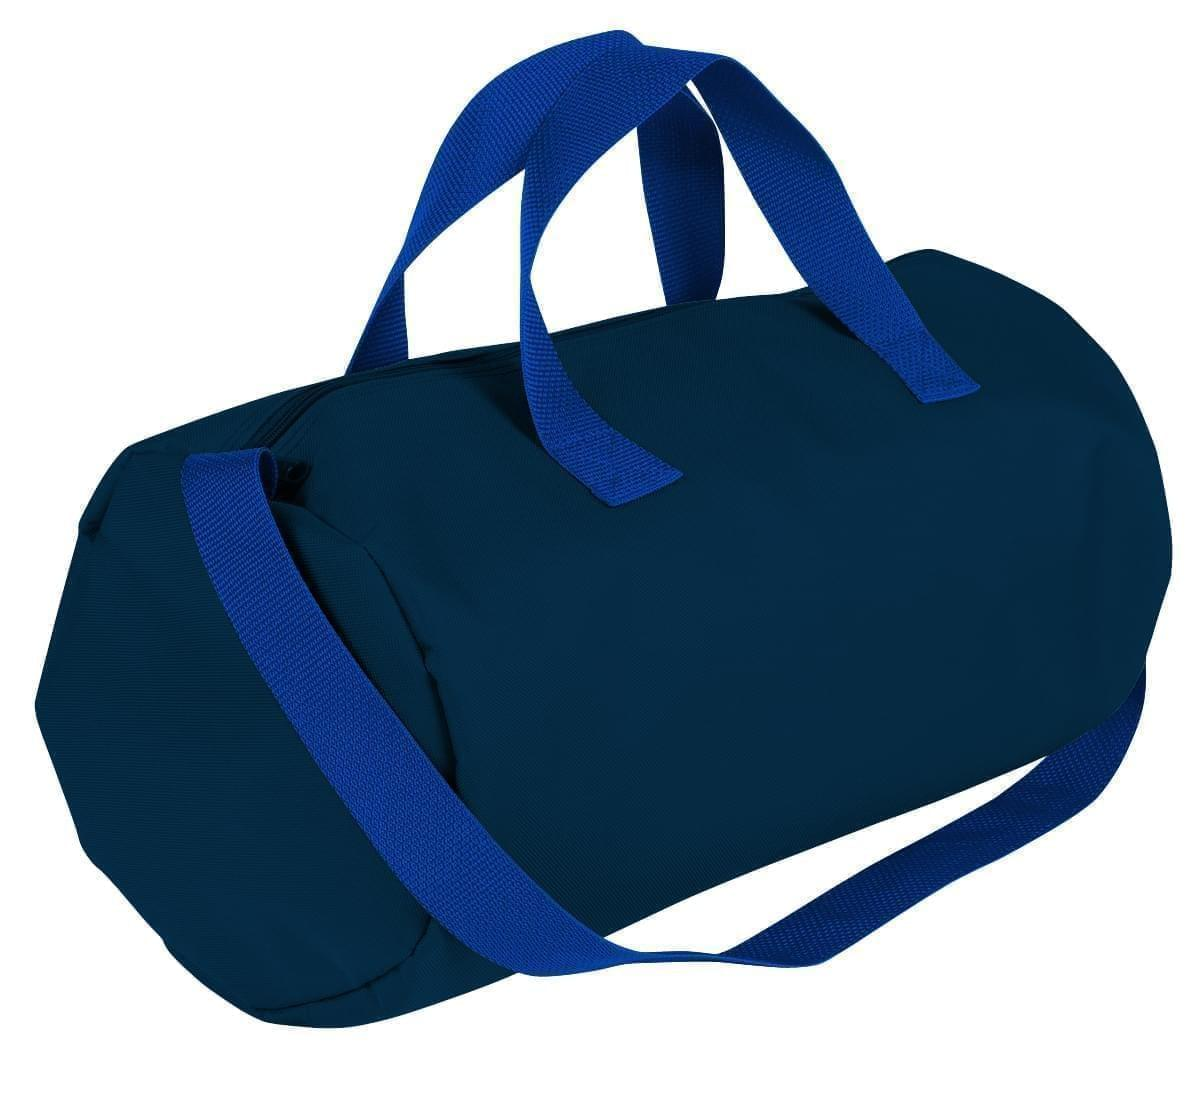 USA Made Nylon Poly Gym Roll Bags, Navy-Royal Blue, ROCX31AAW3